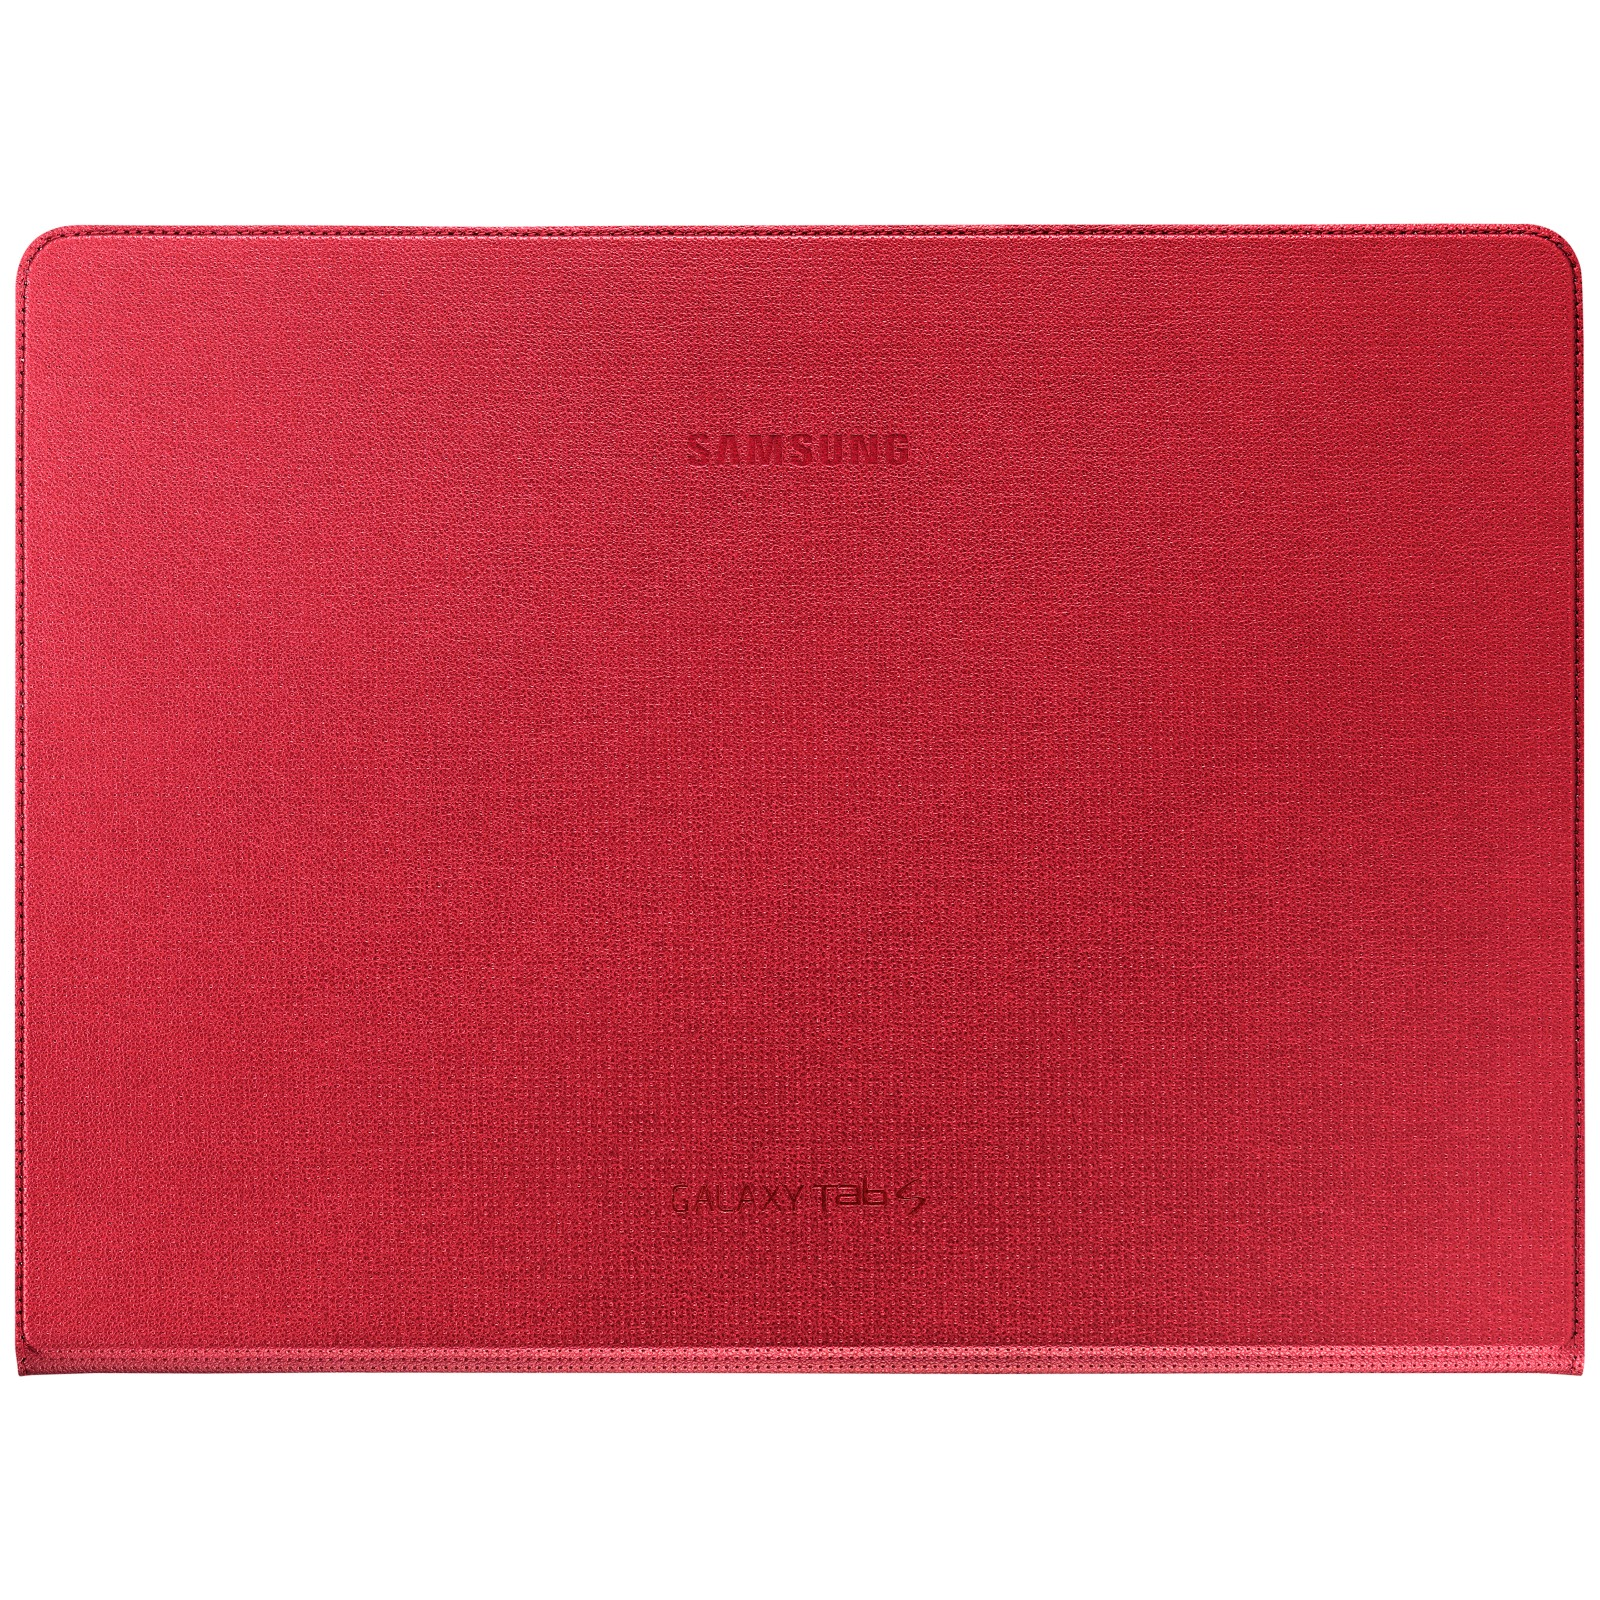 """Samsung Slim Cover for Galaxy Tab S 10.5"""" Red"""